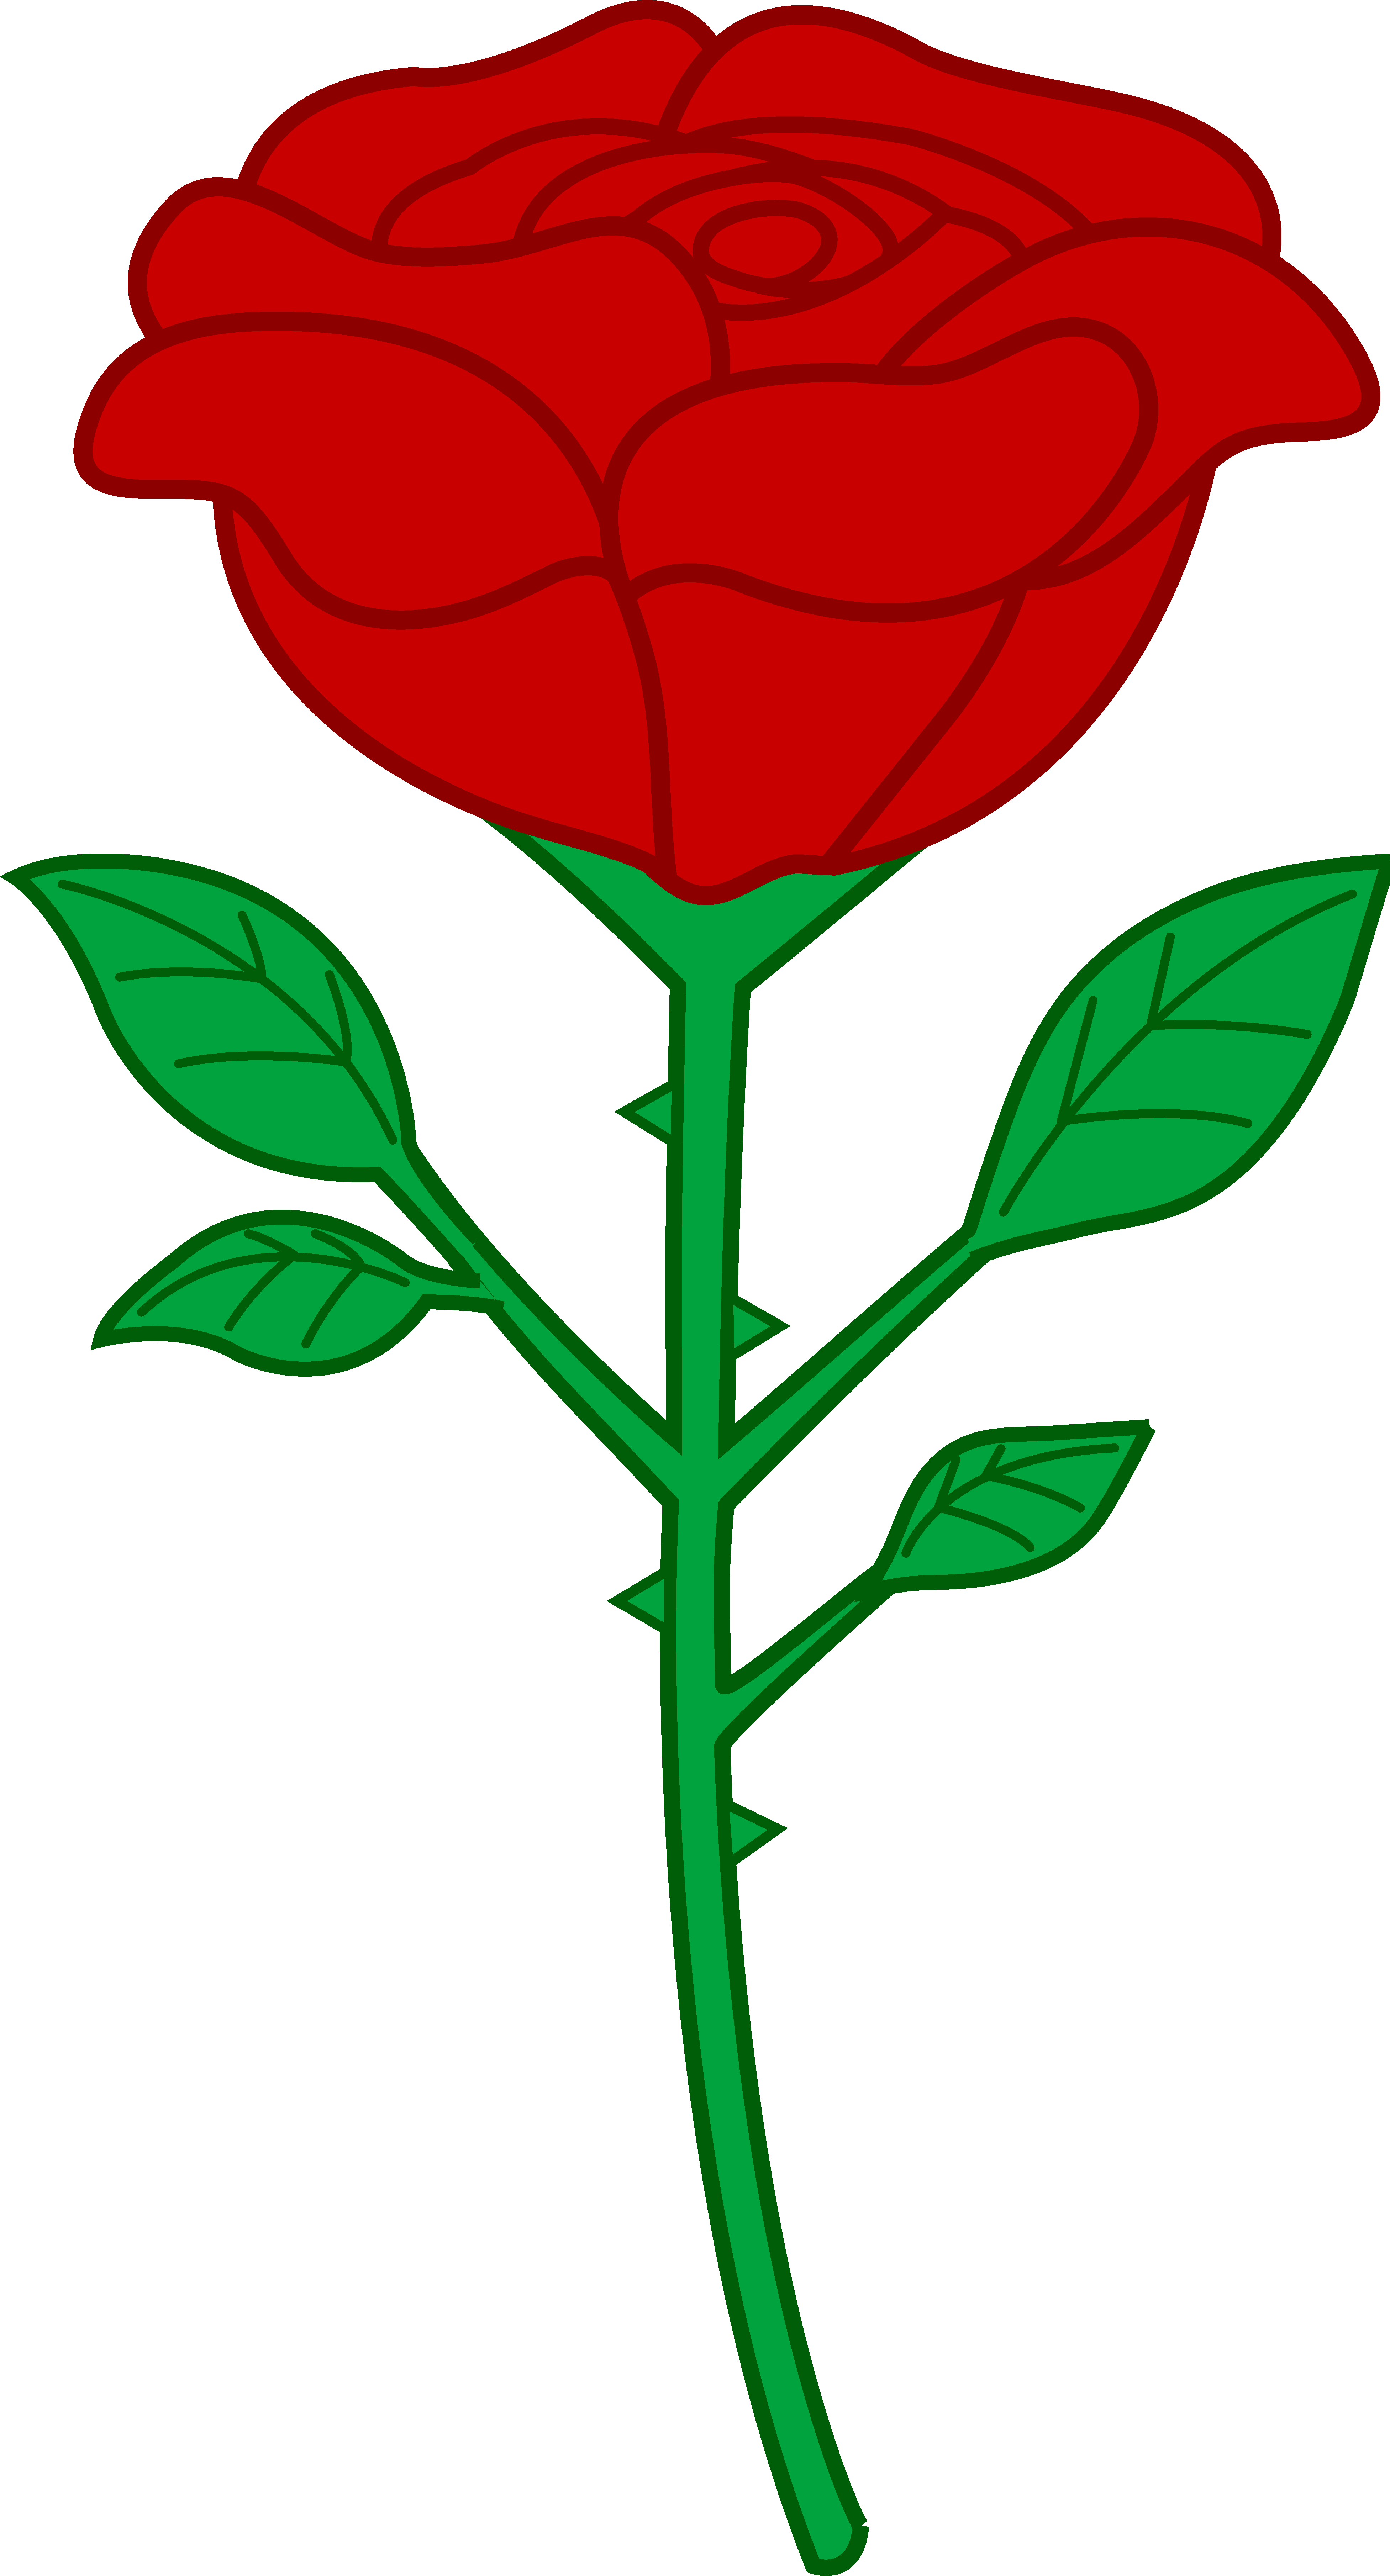 clipart rose - Clipart Roses